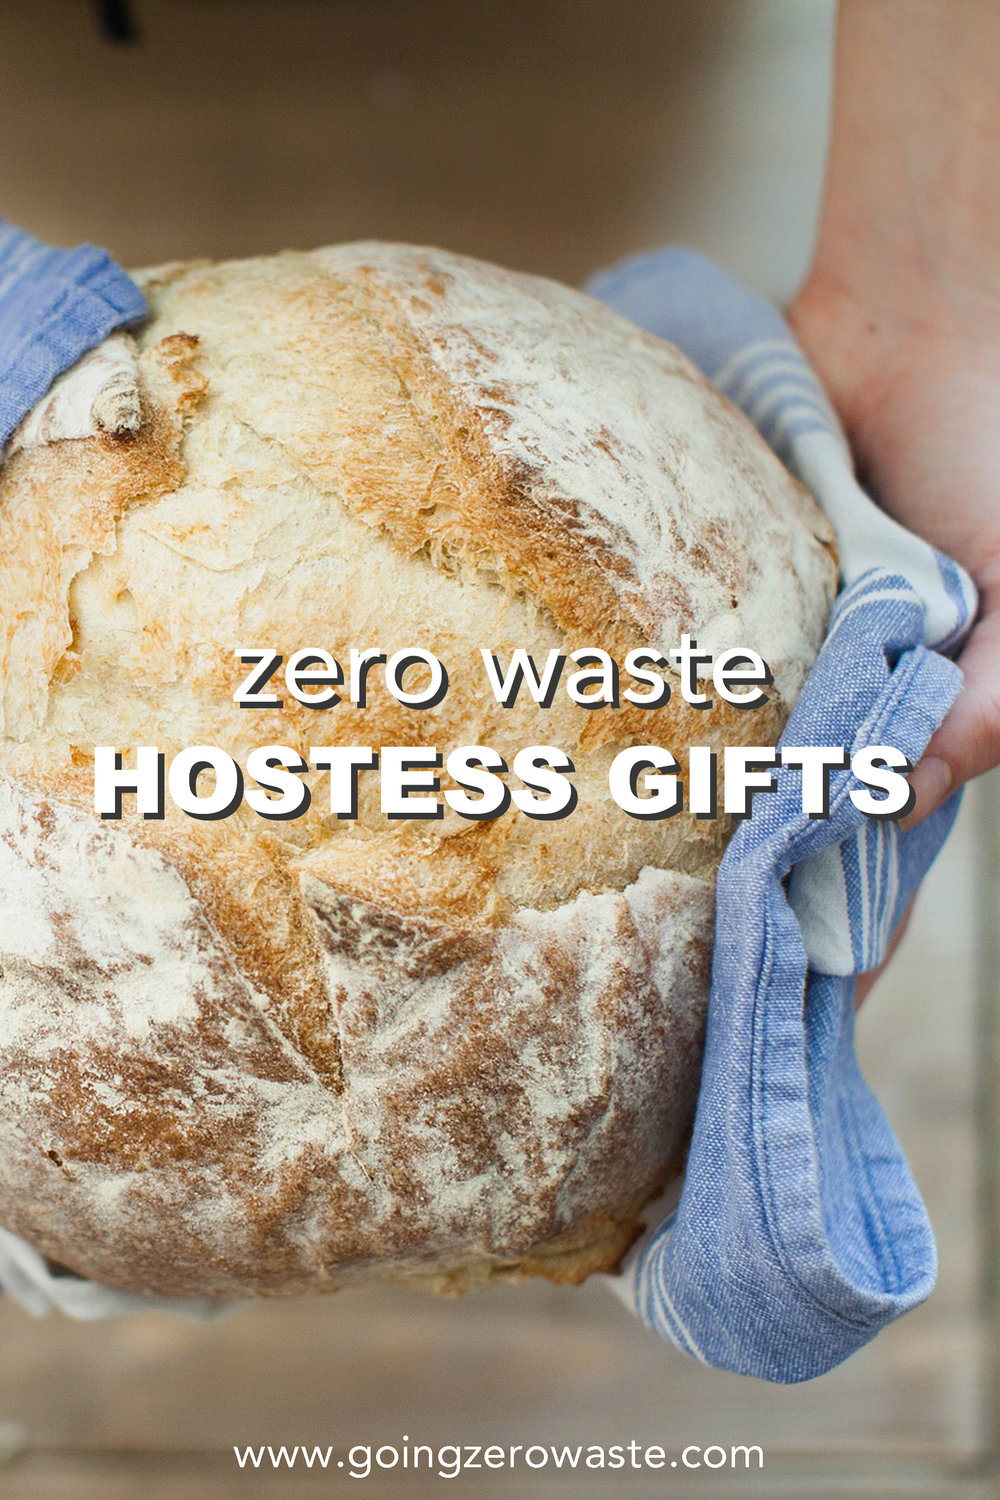 zero waste hostess gifts from www.goingzerowaste.com #zerowaste